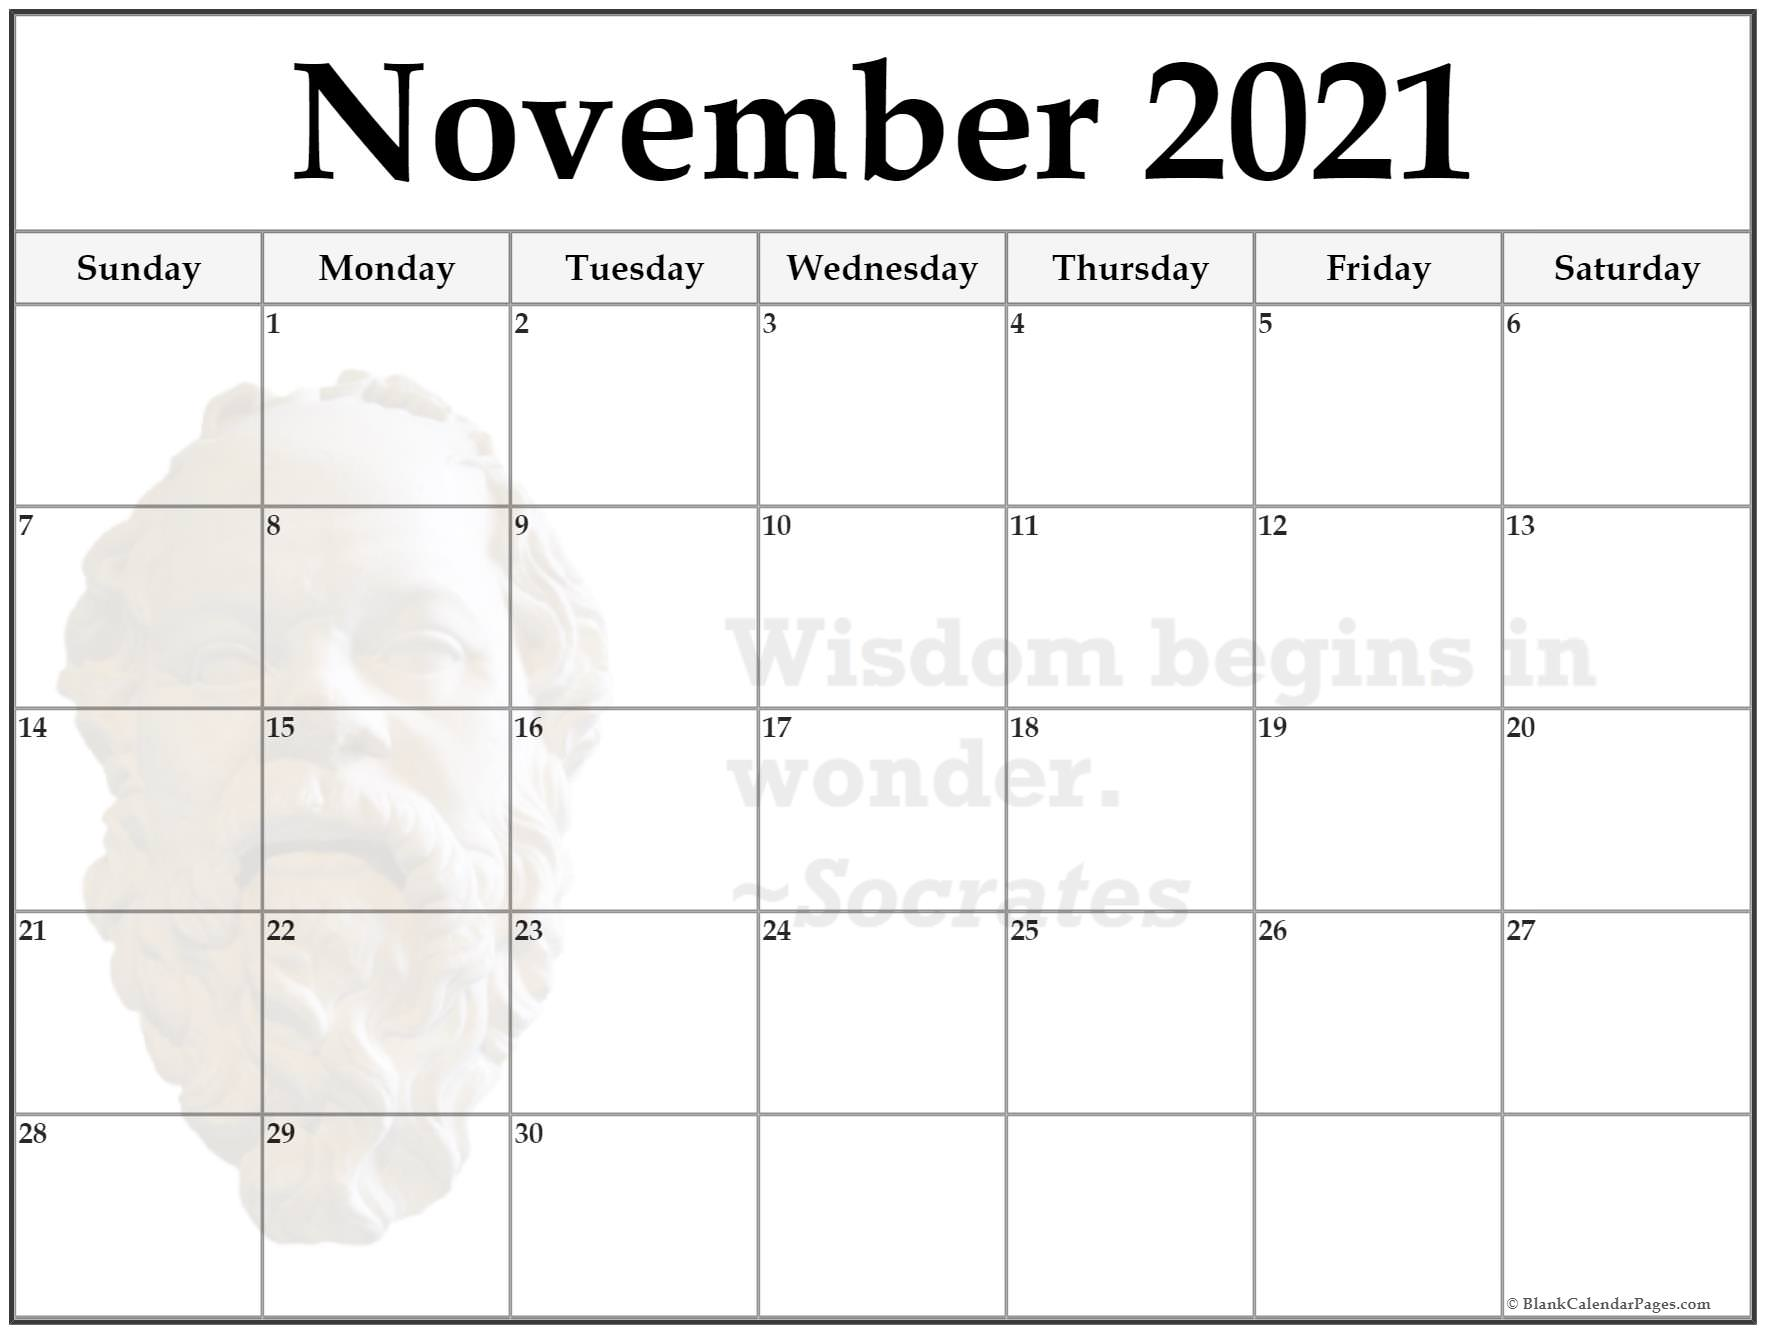 November 2018 monthly quote calendar template. Wisdom begins in wonder. ~Socrates